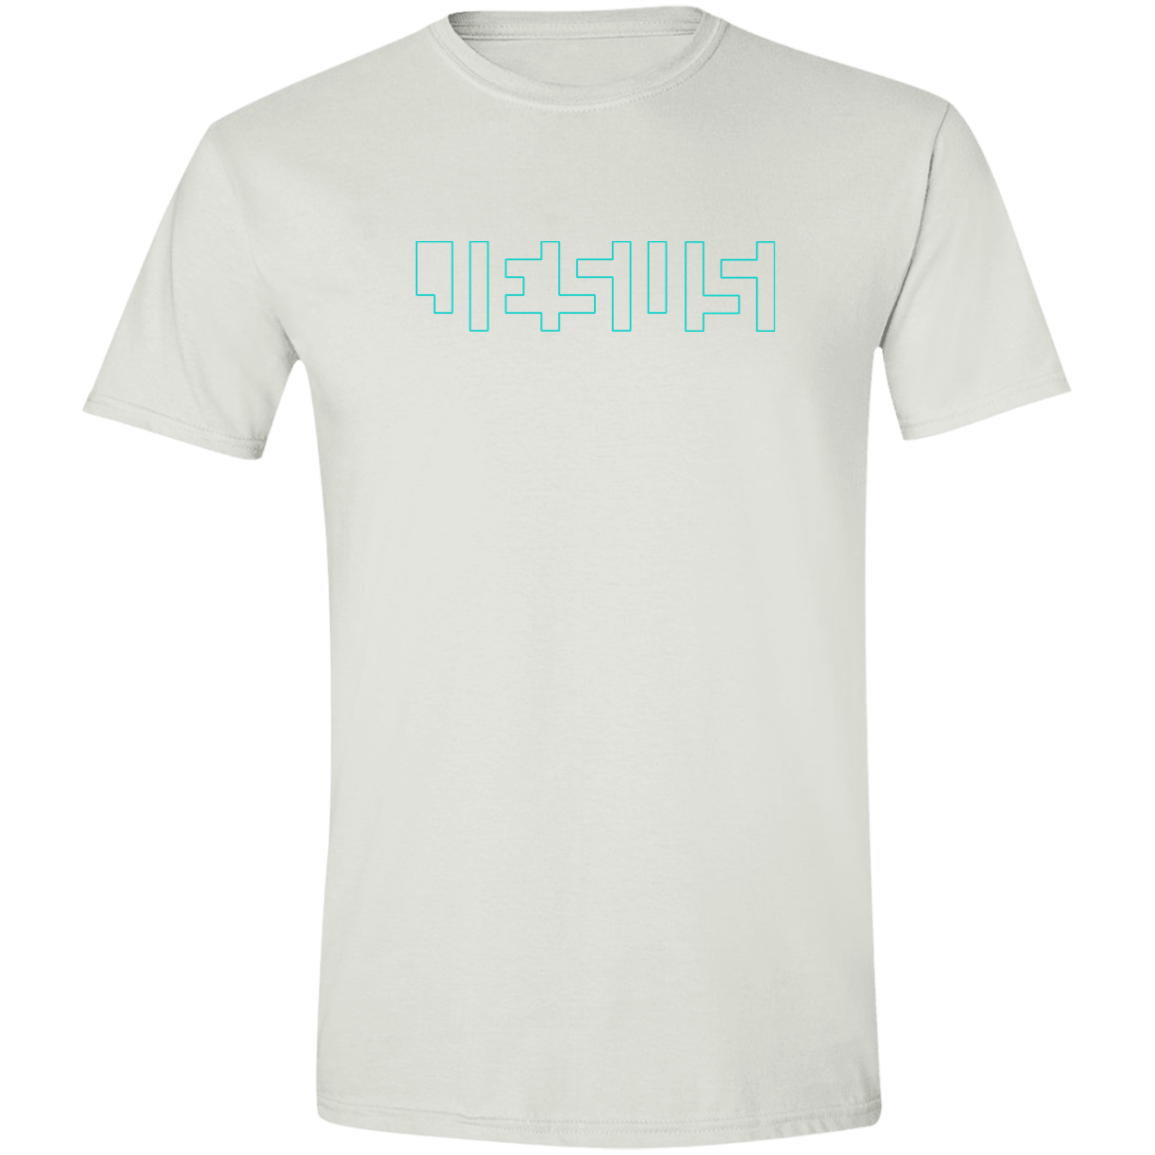 G640 Softstyle T-Shirt